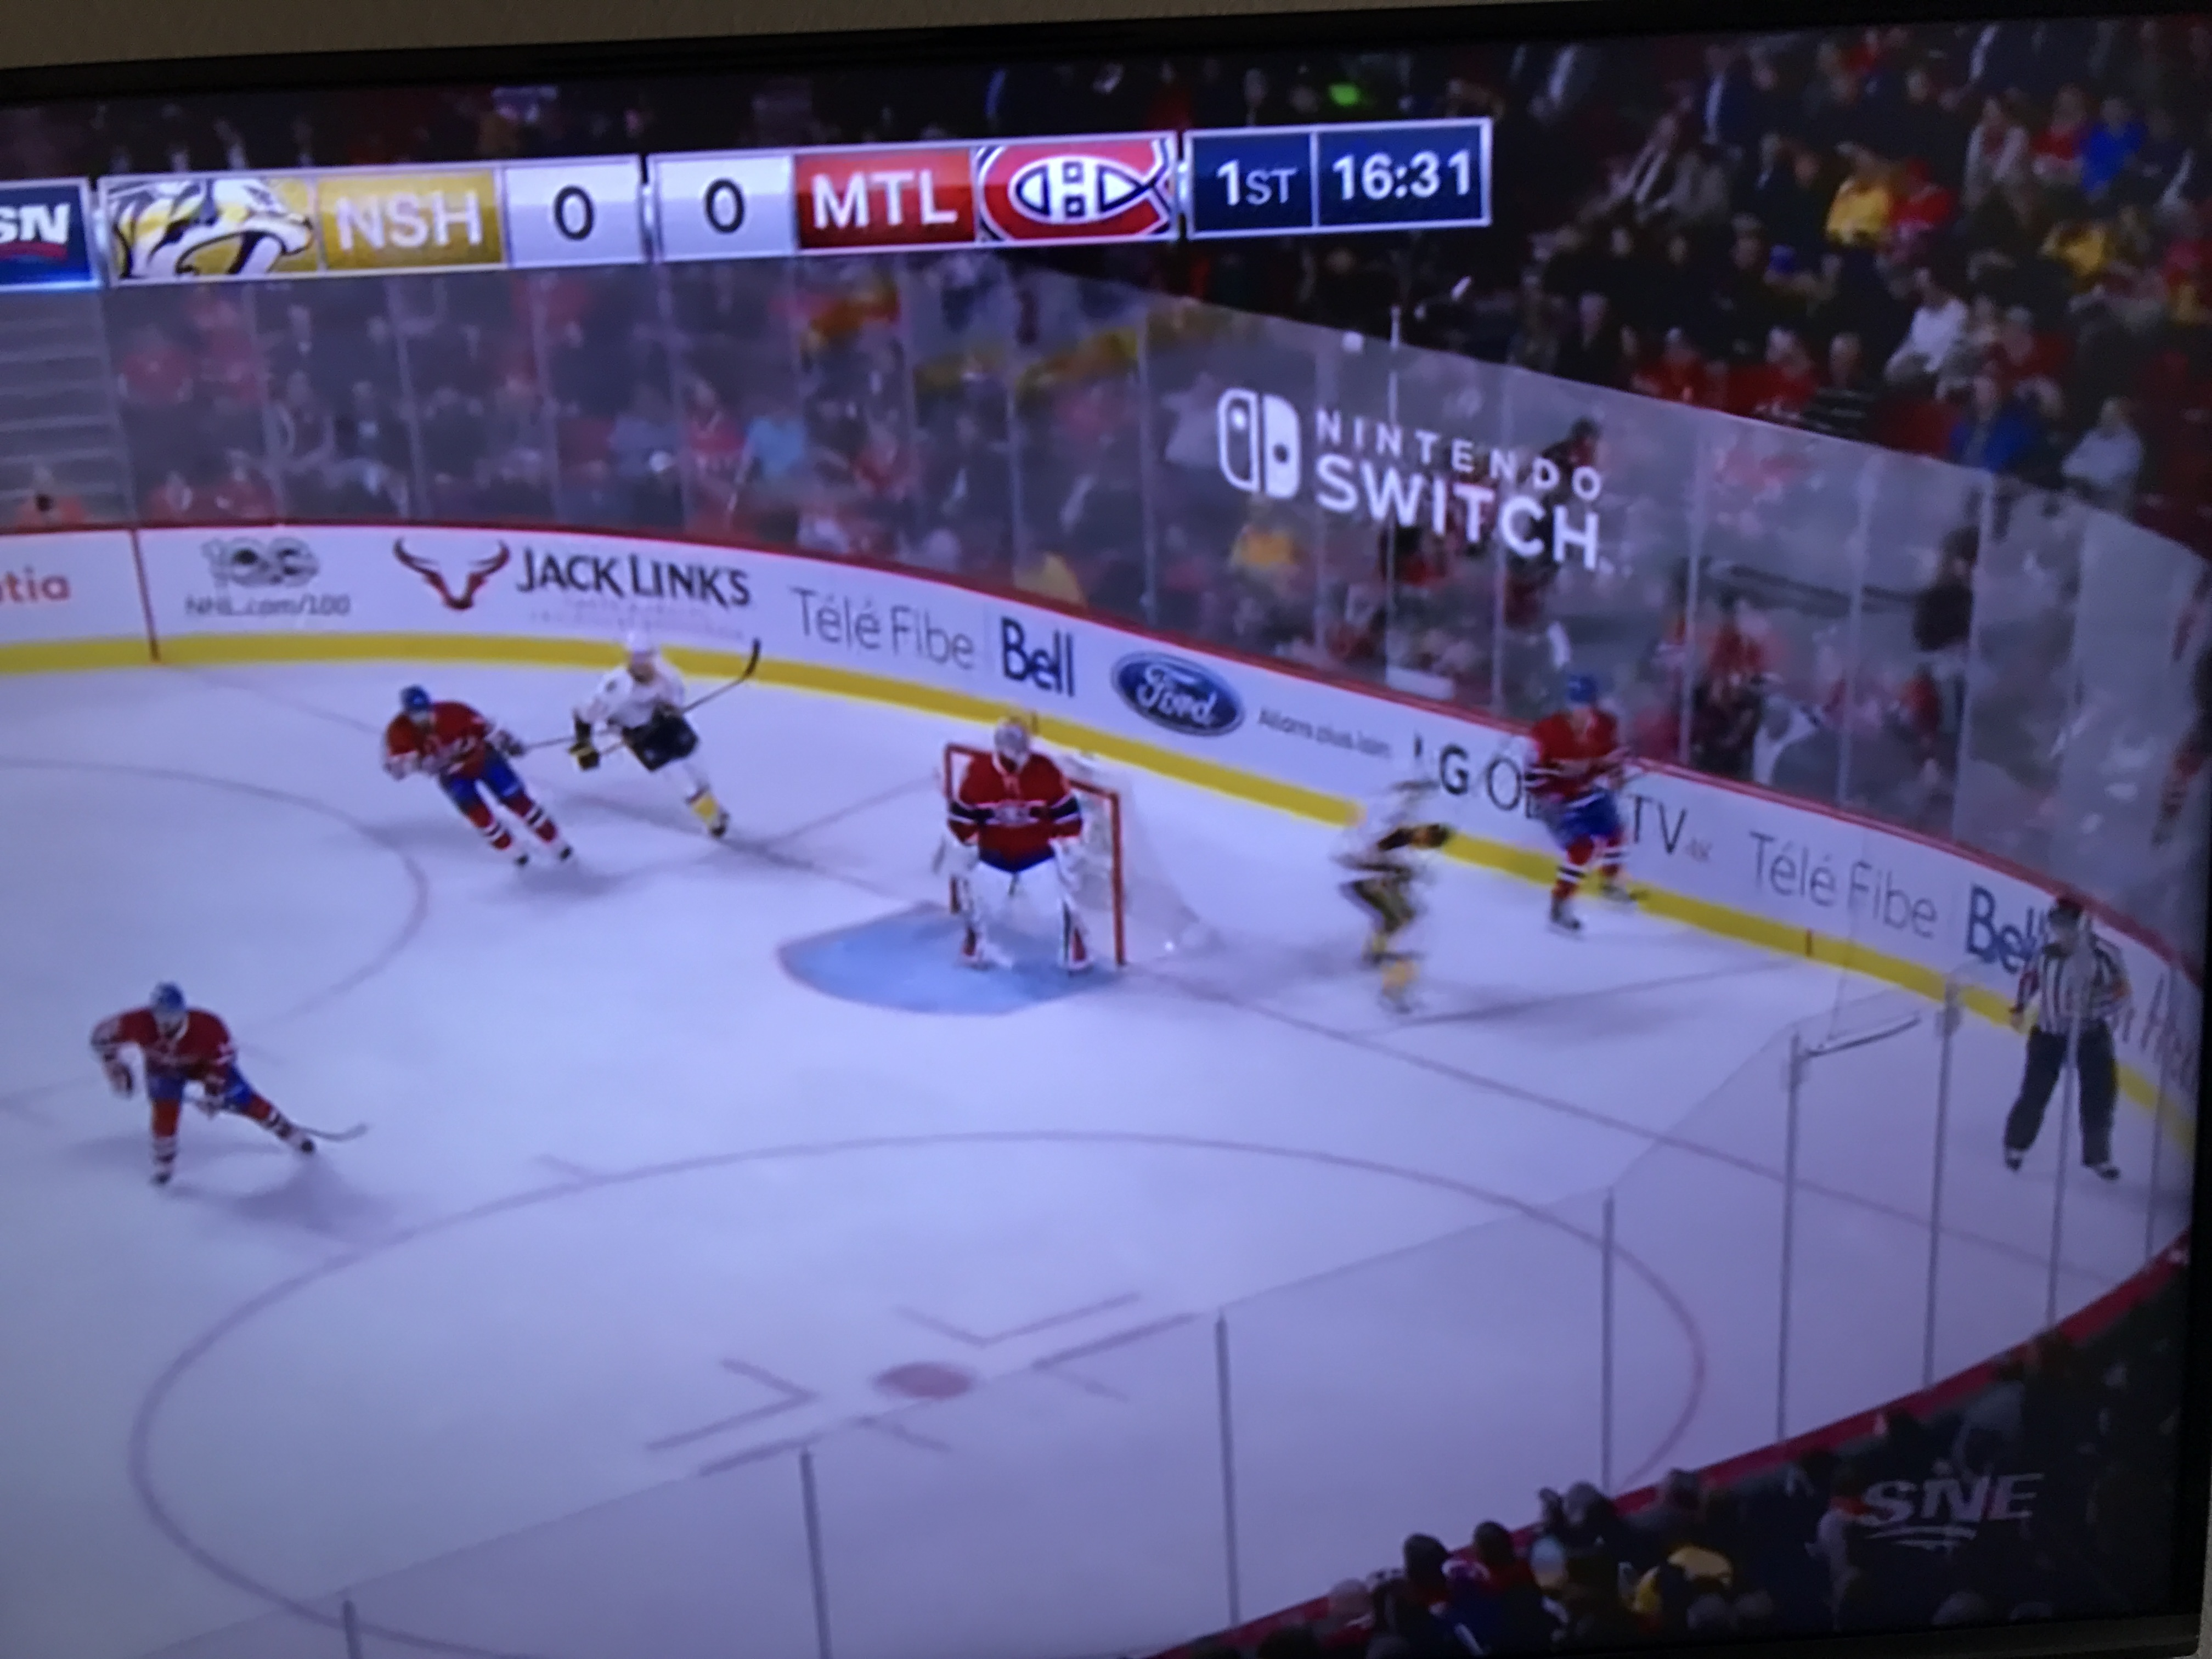 The Nintendo Switch Was Advertised During A Hockey Game My